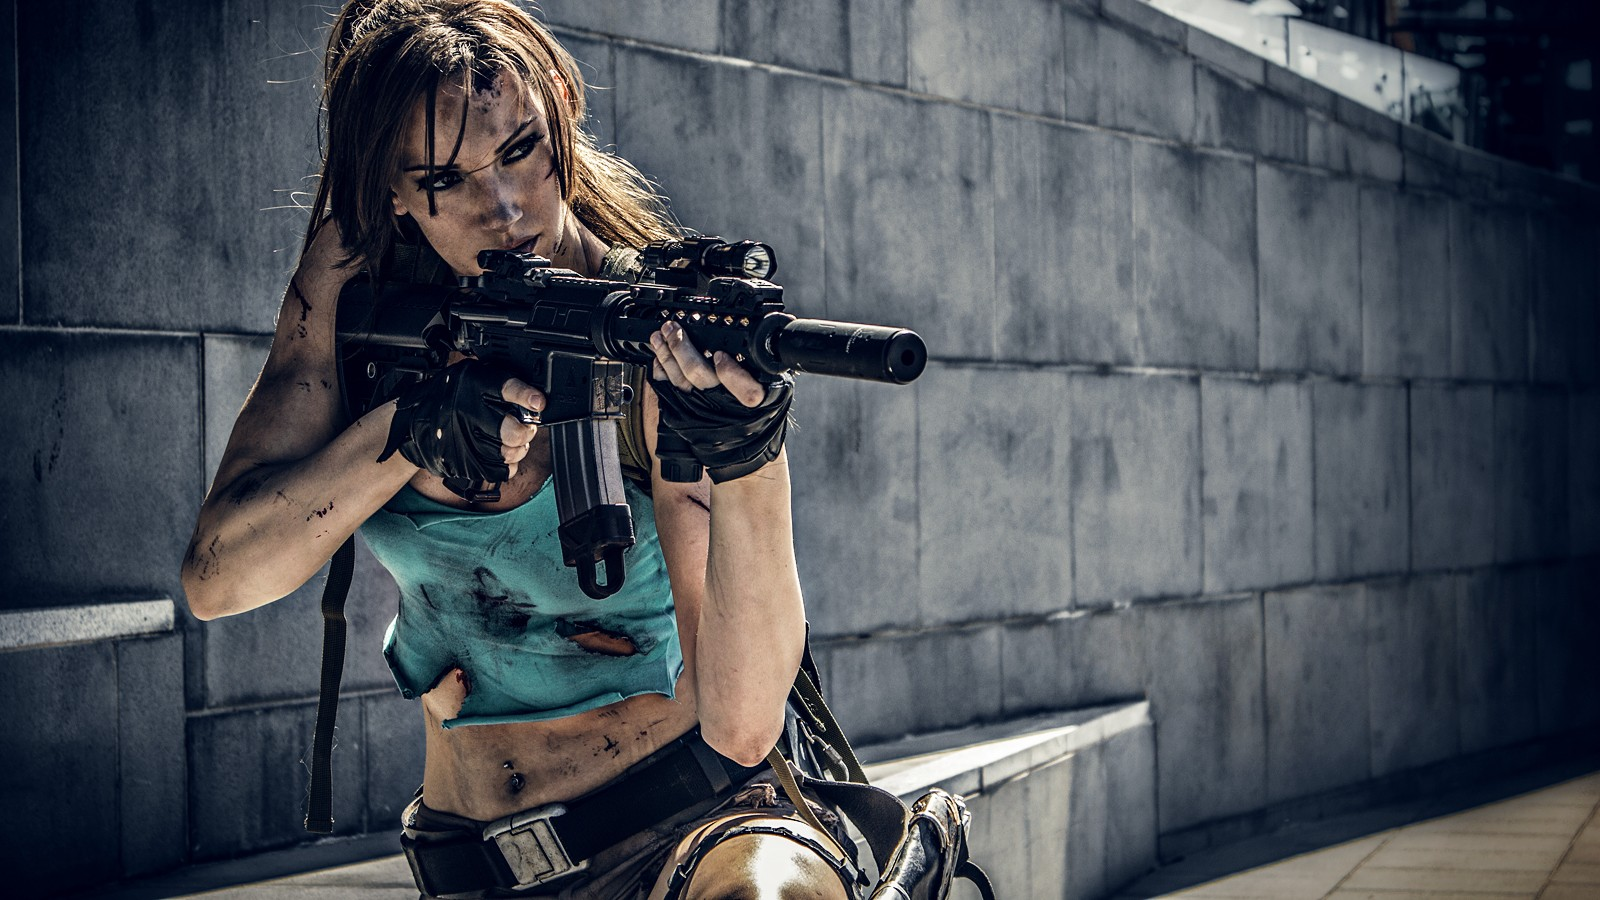 18 2015 By Stephen Comments Off on Girls With Guns HD Wallpapers 1600x900